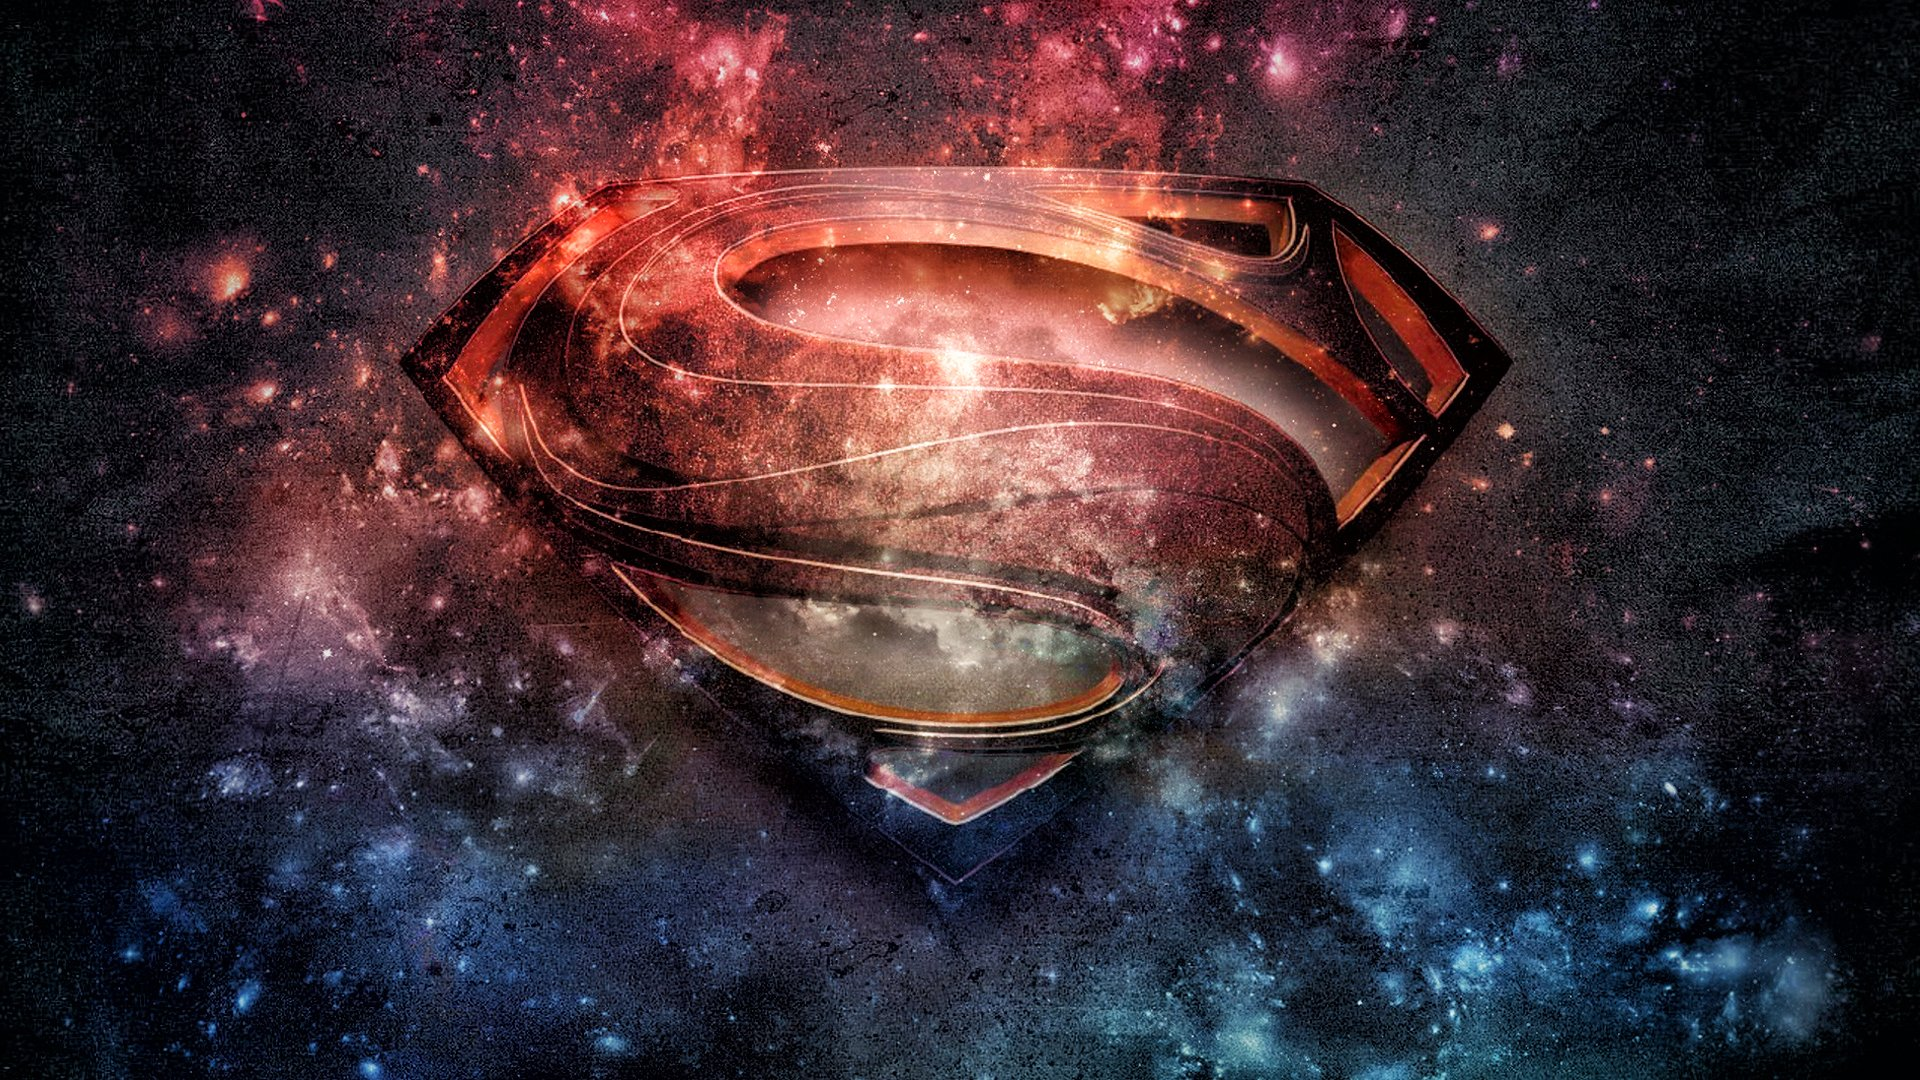 Logo Emblem Supergirl hero superhero poster superman comics movie film 1920x1080